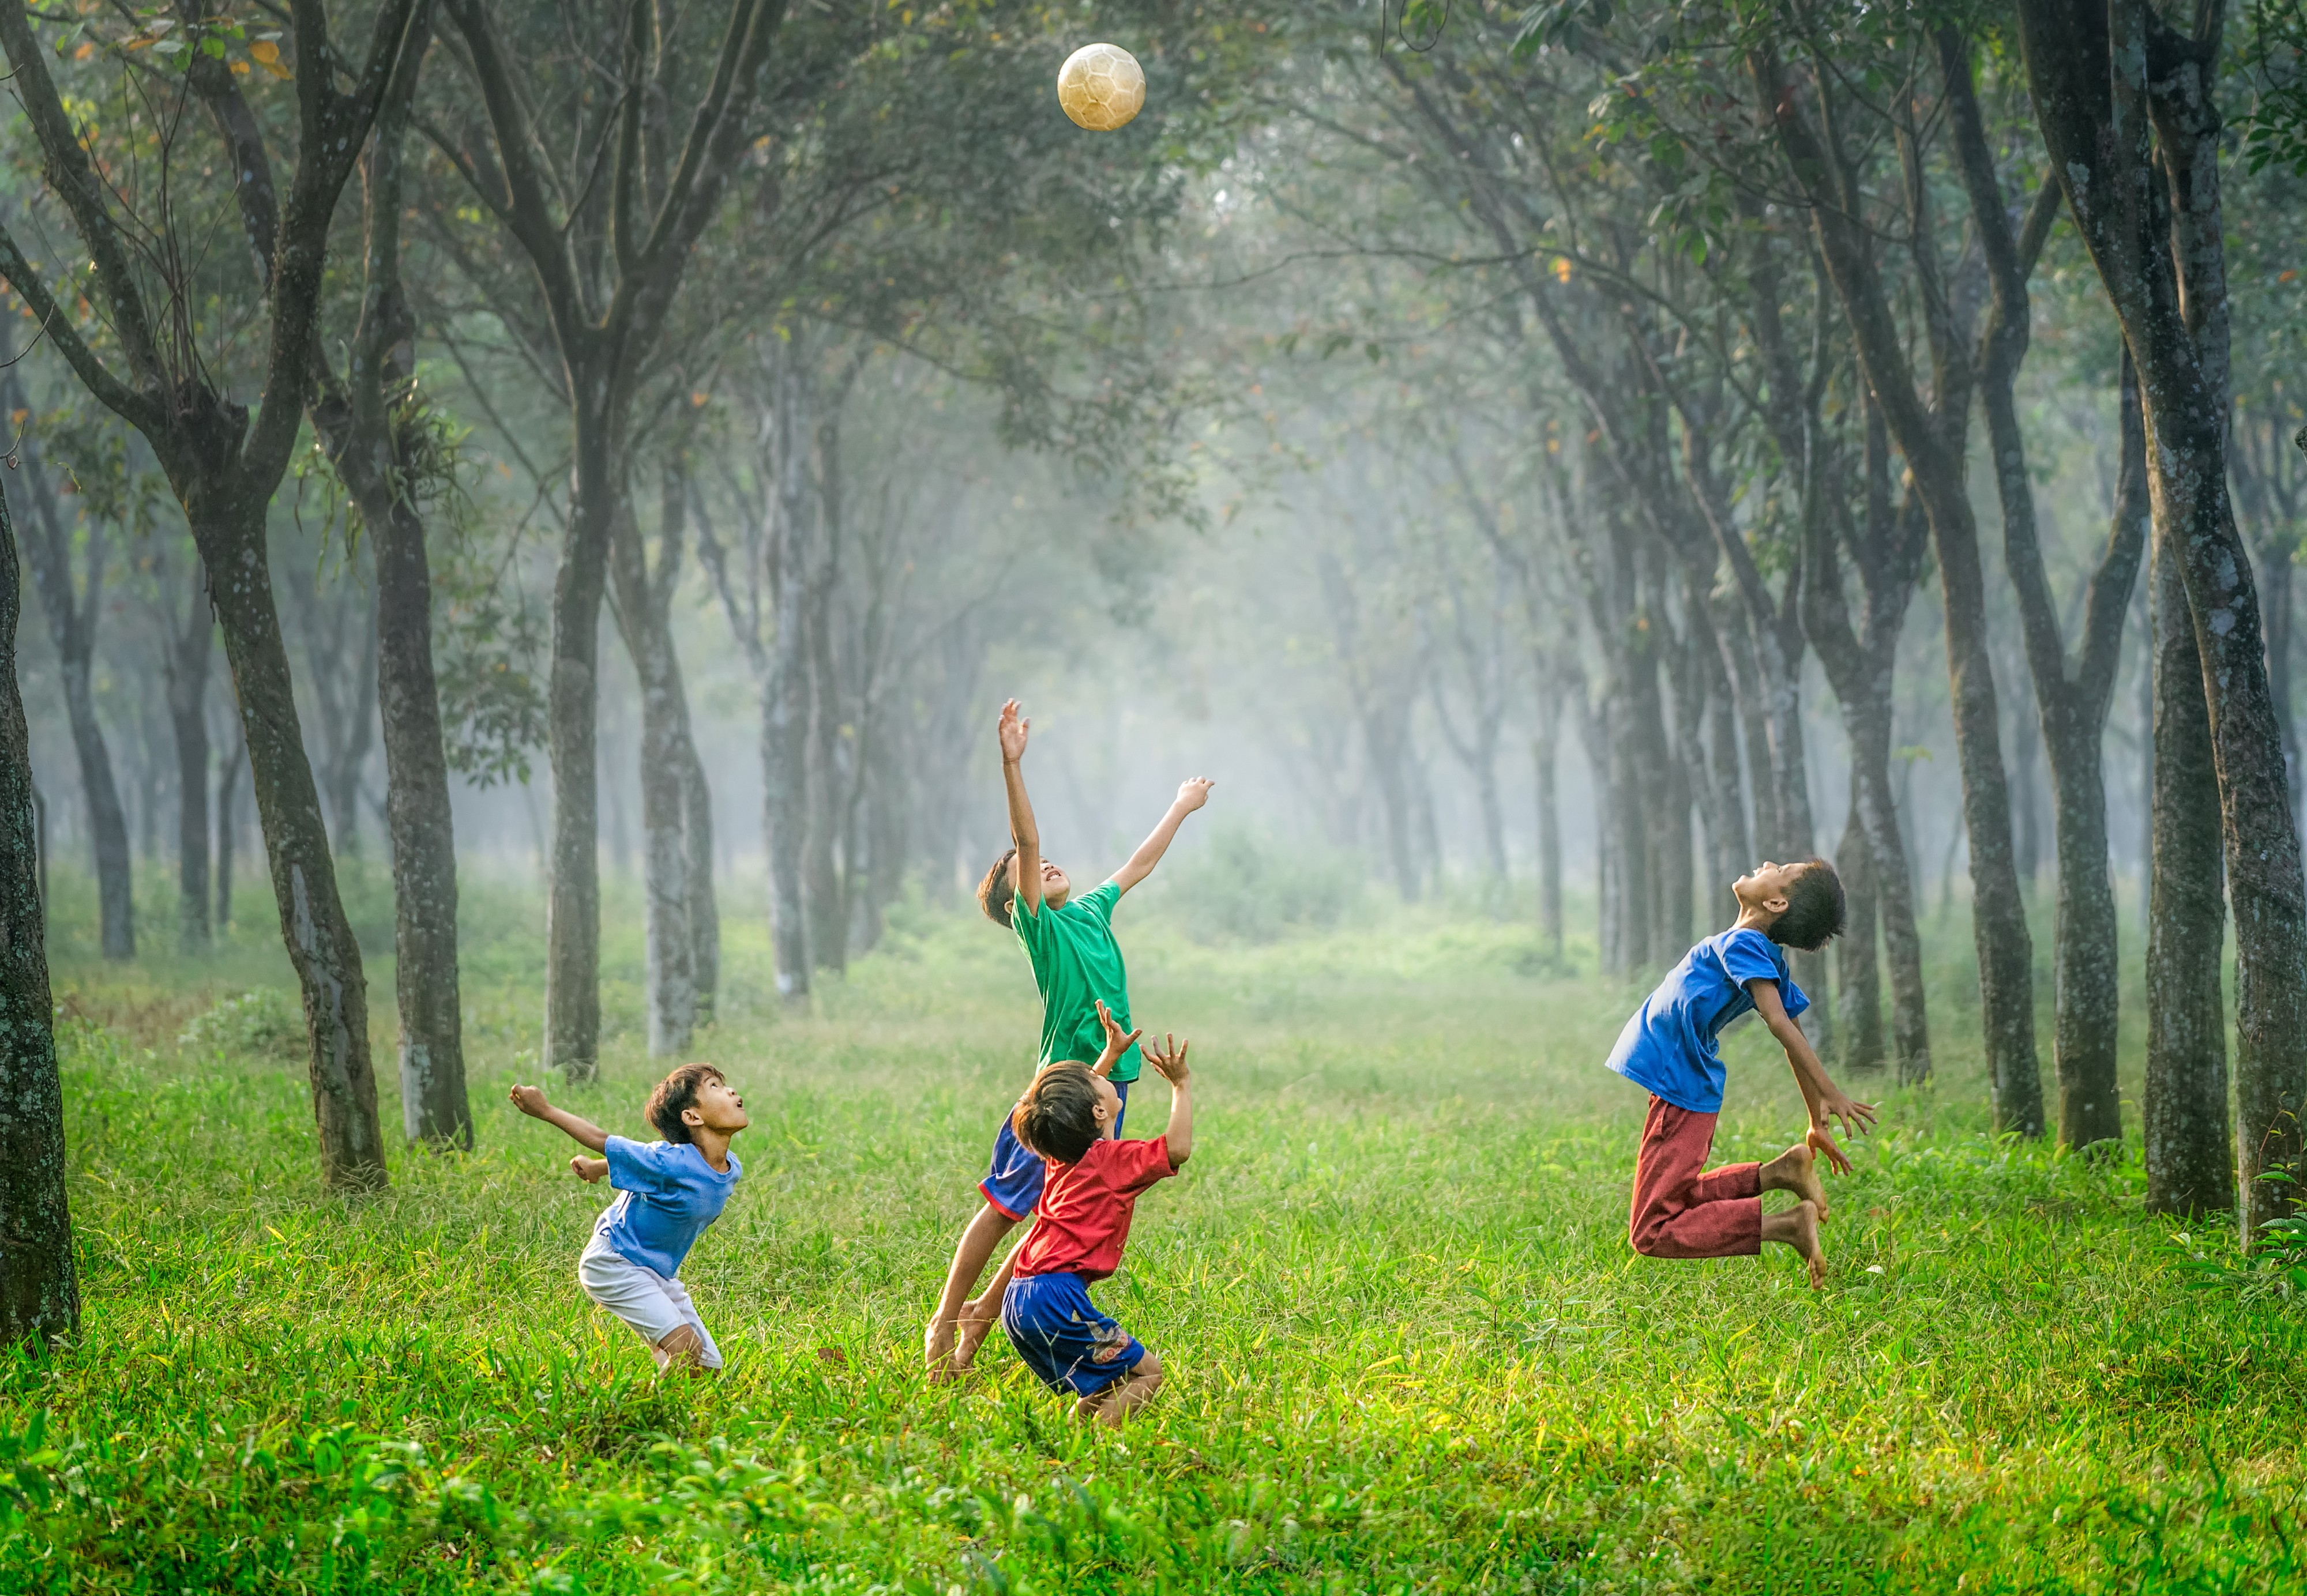 Children playing with a ball in an orchard. Relaxation is vital to health, doing something you find fun.